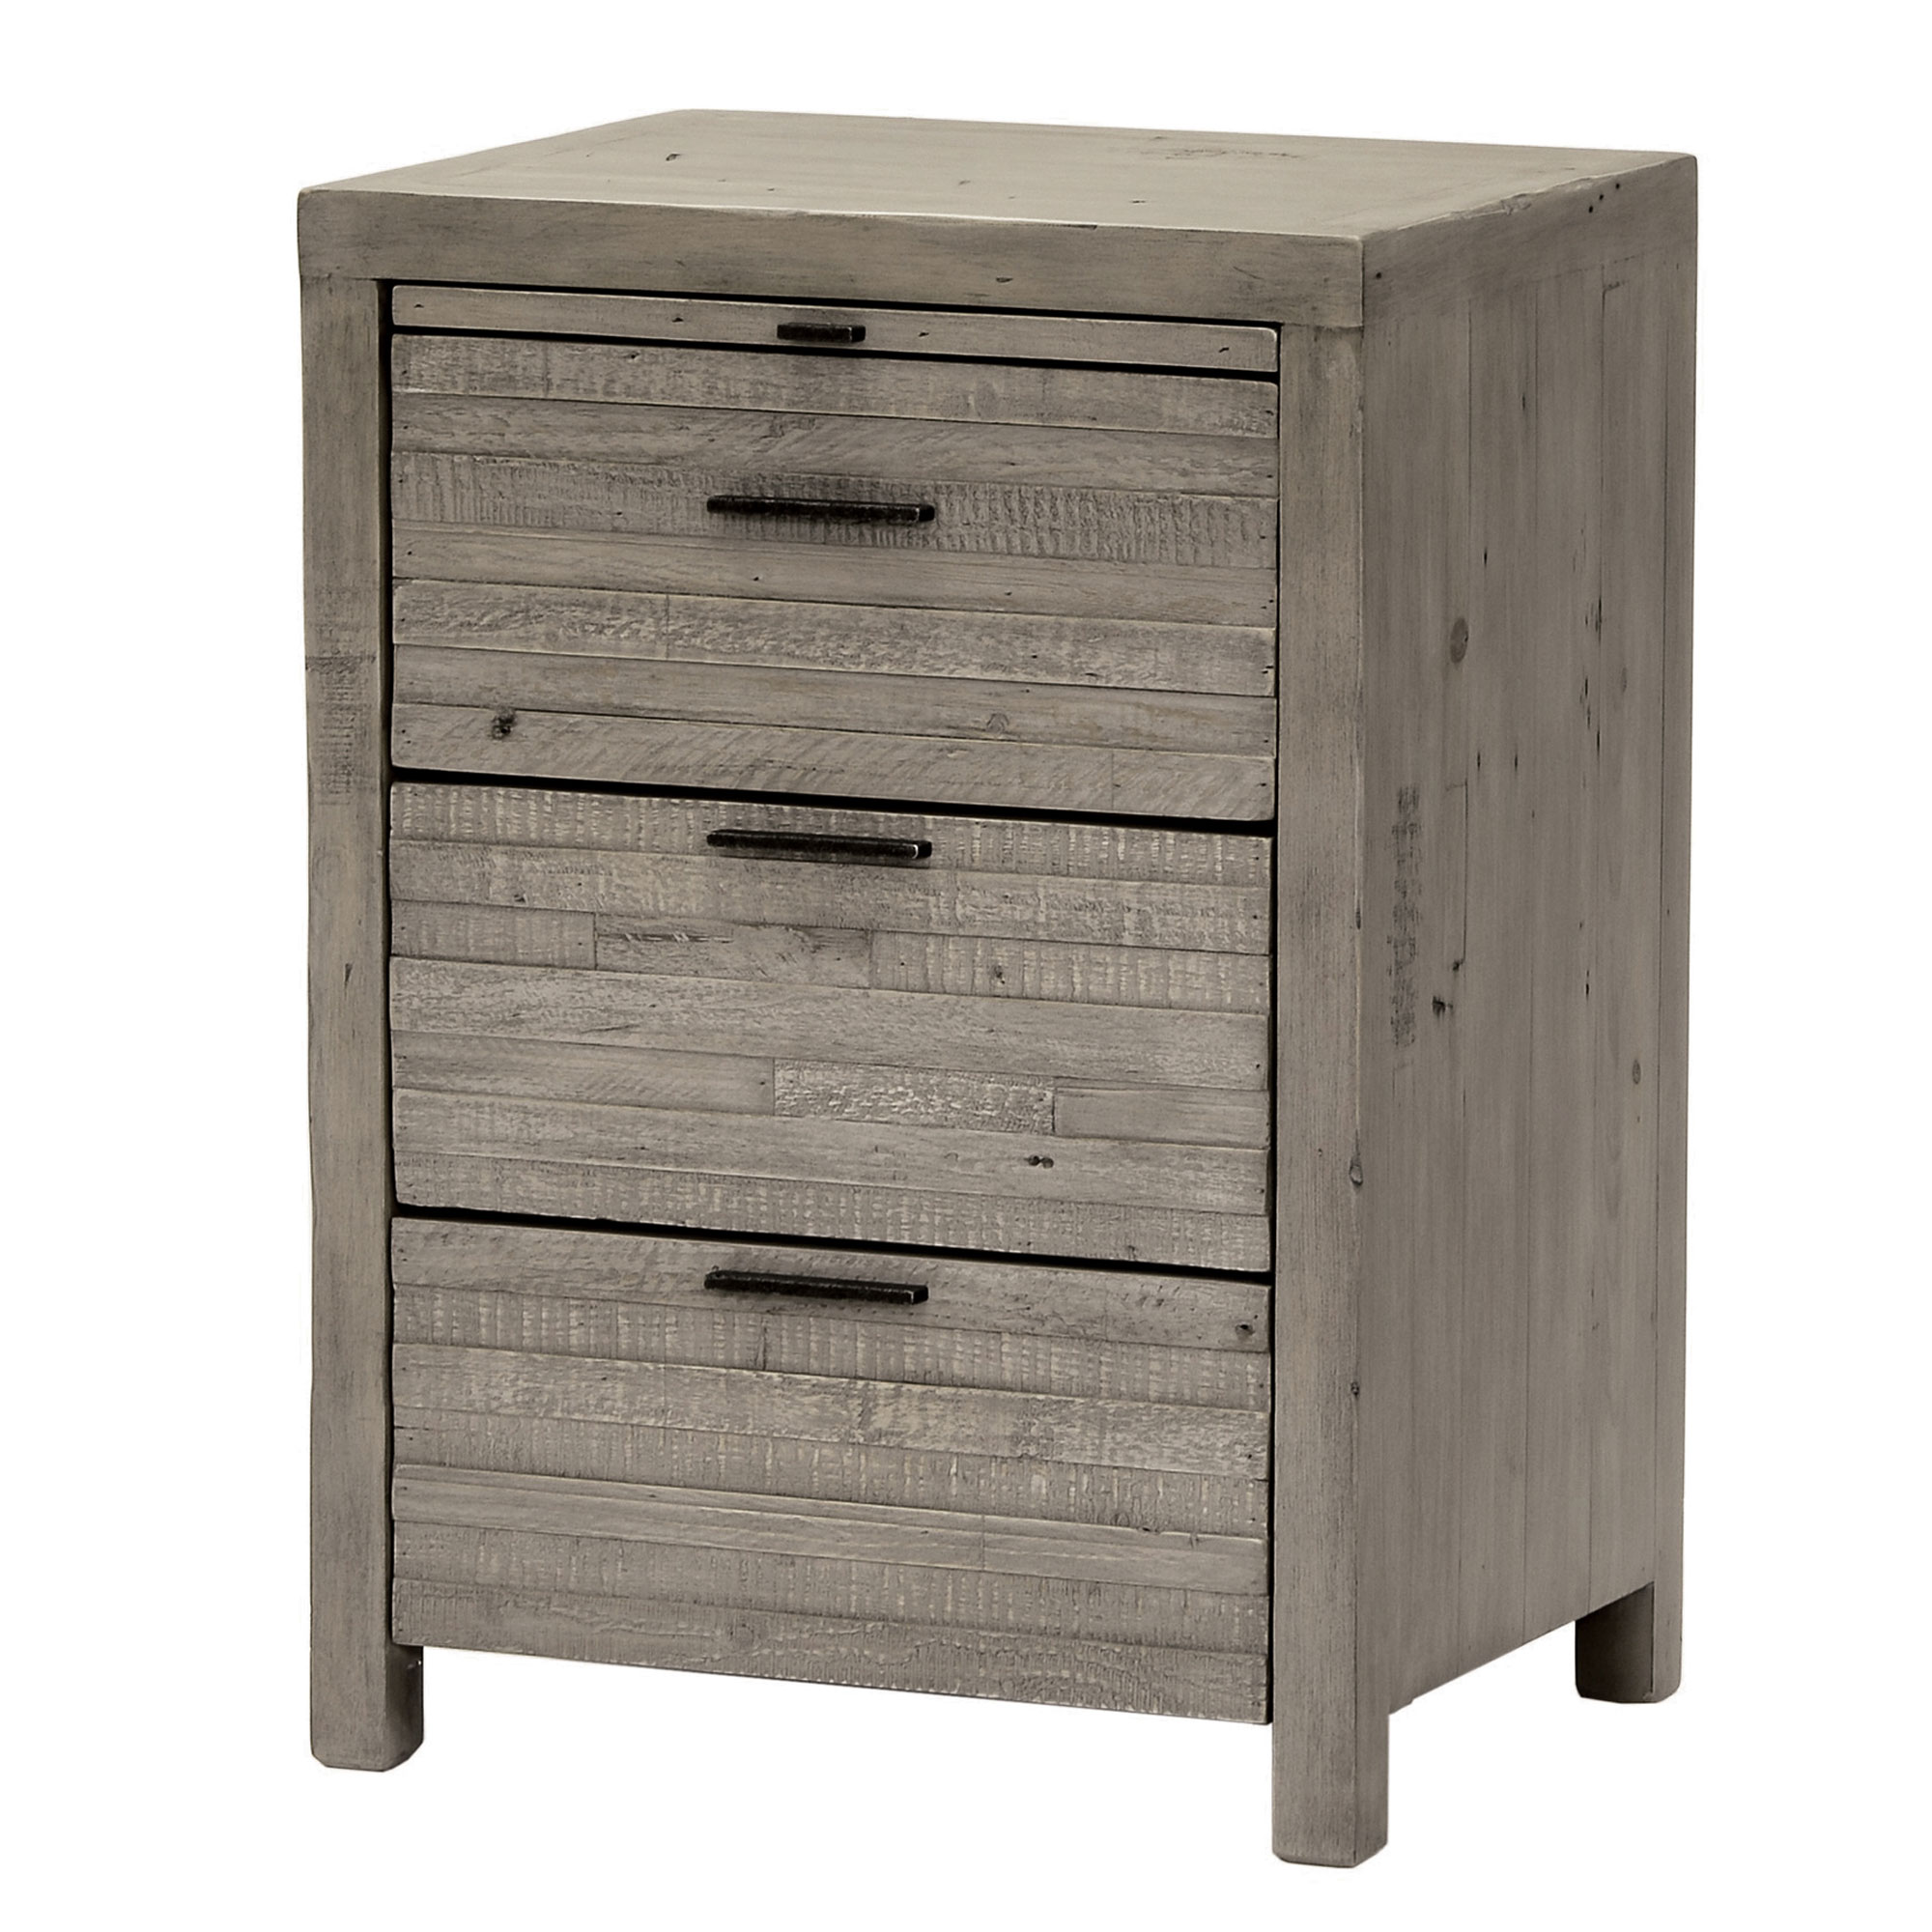 Siena Three Drawer Bedside